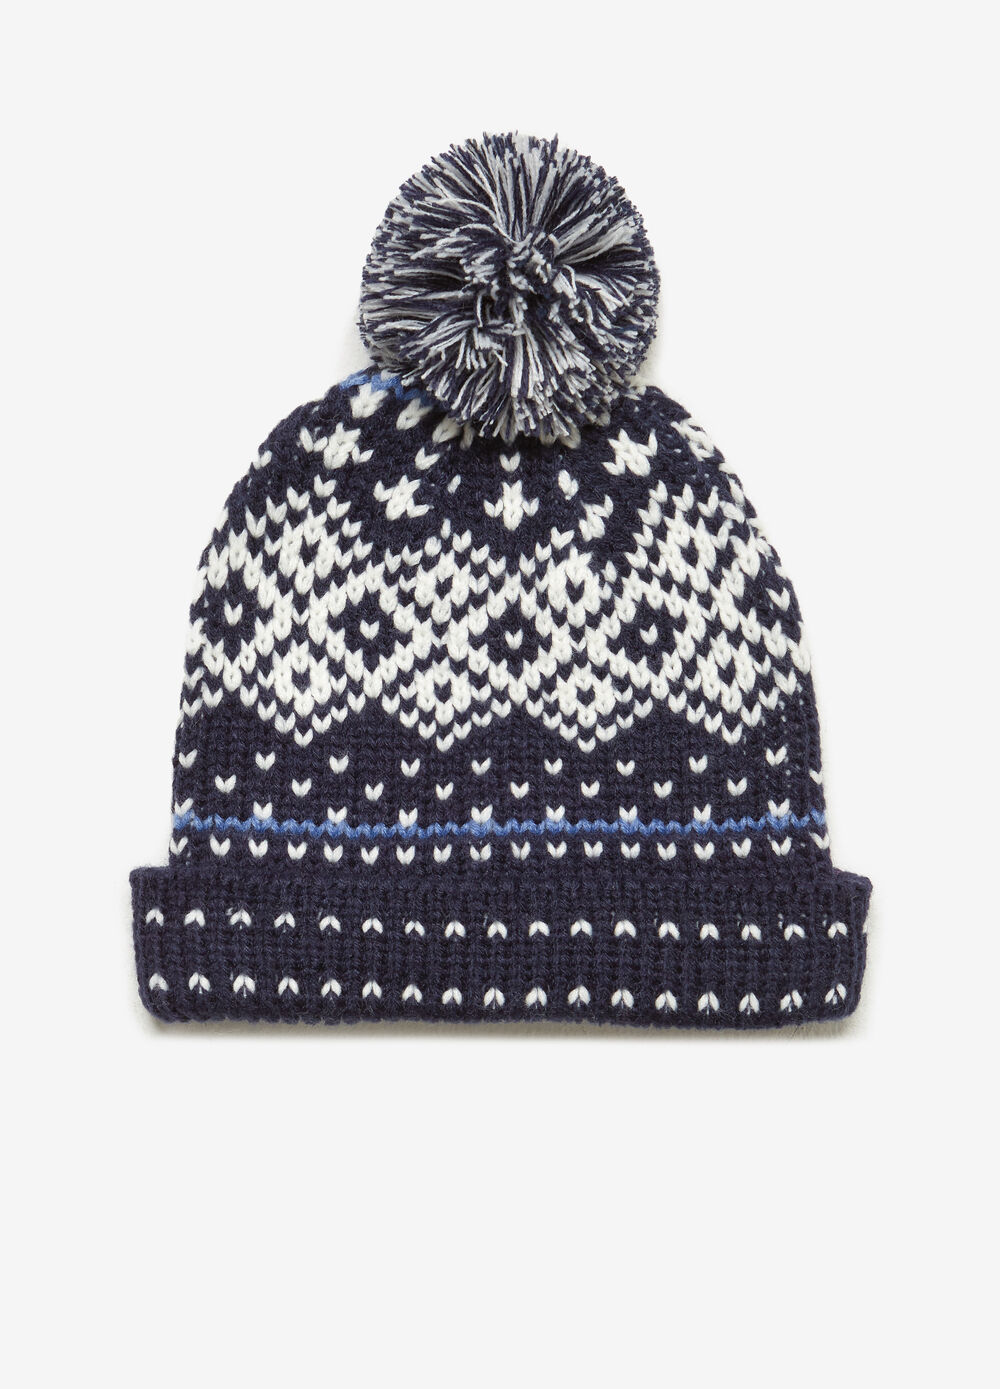 Patterned beanie cap with pompoms